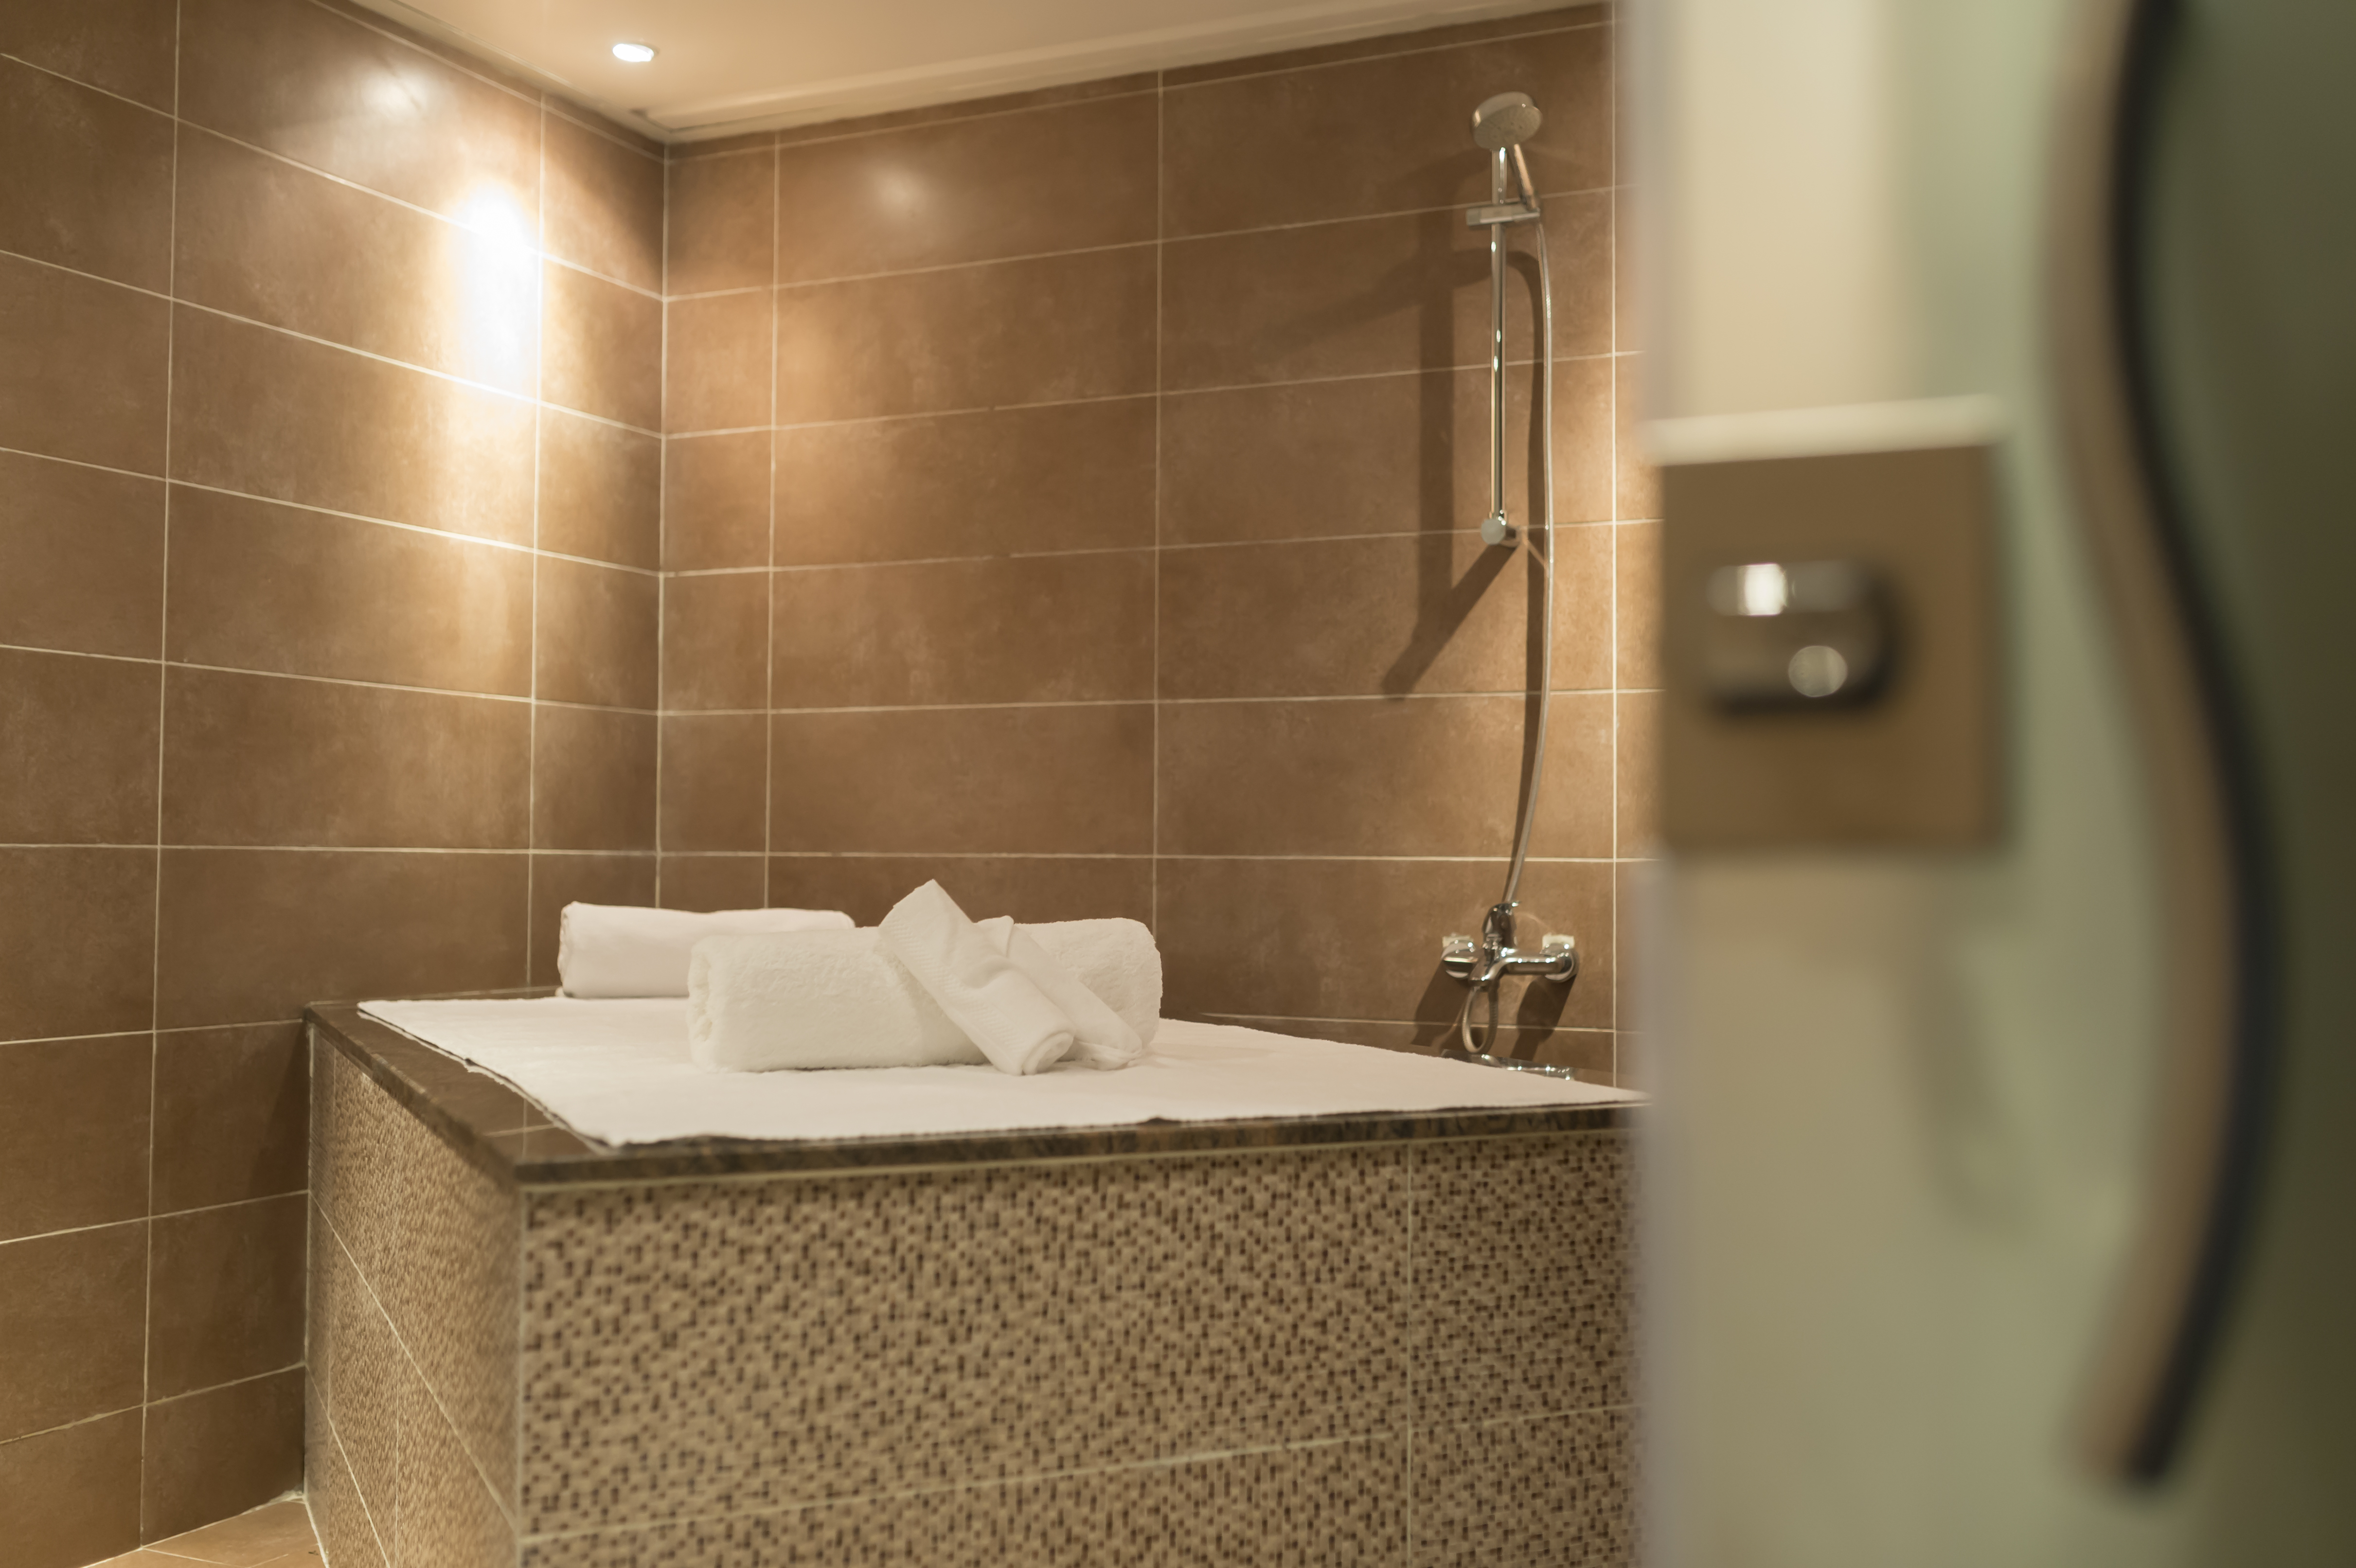 Revive Salon & Spa hammam